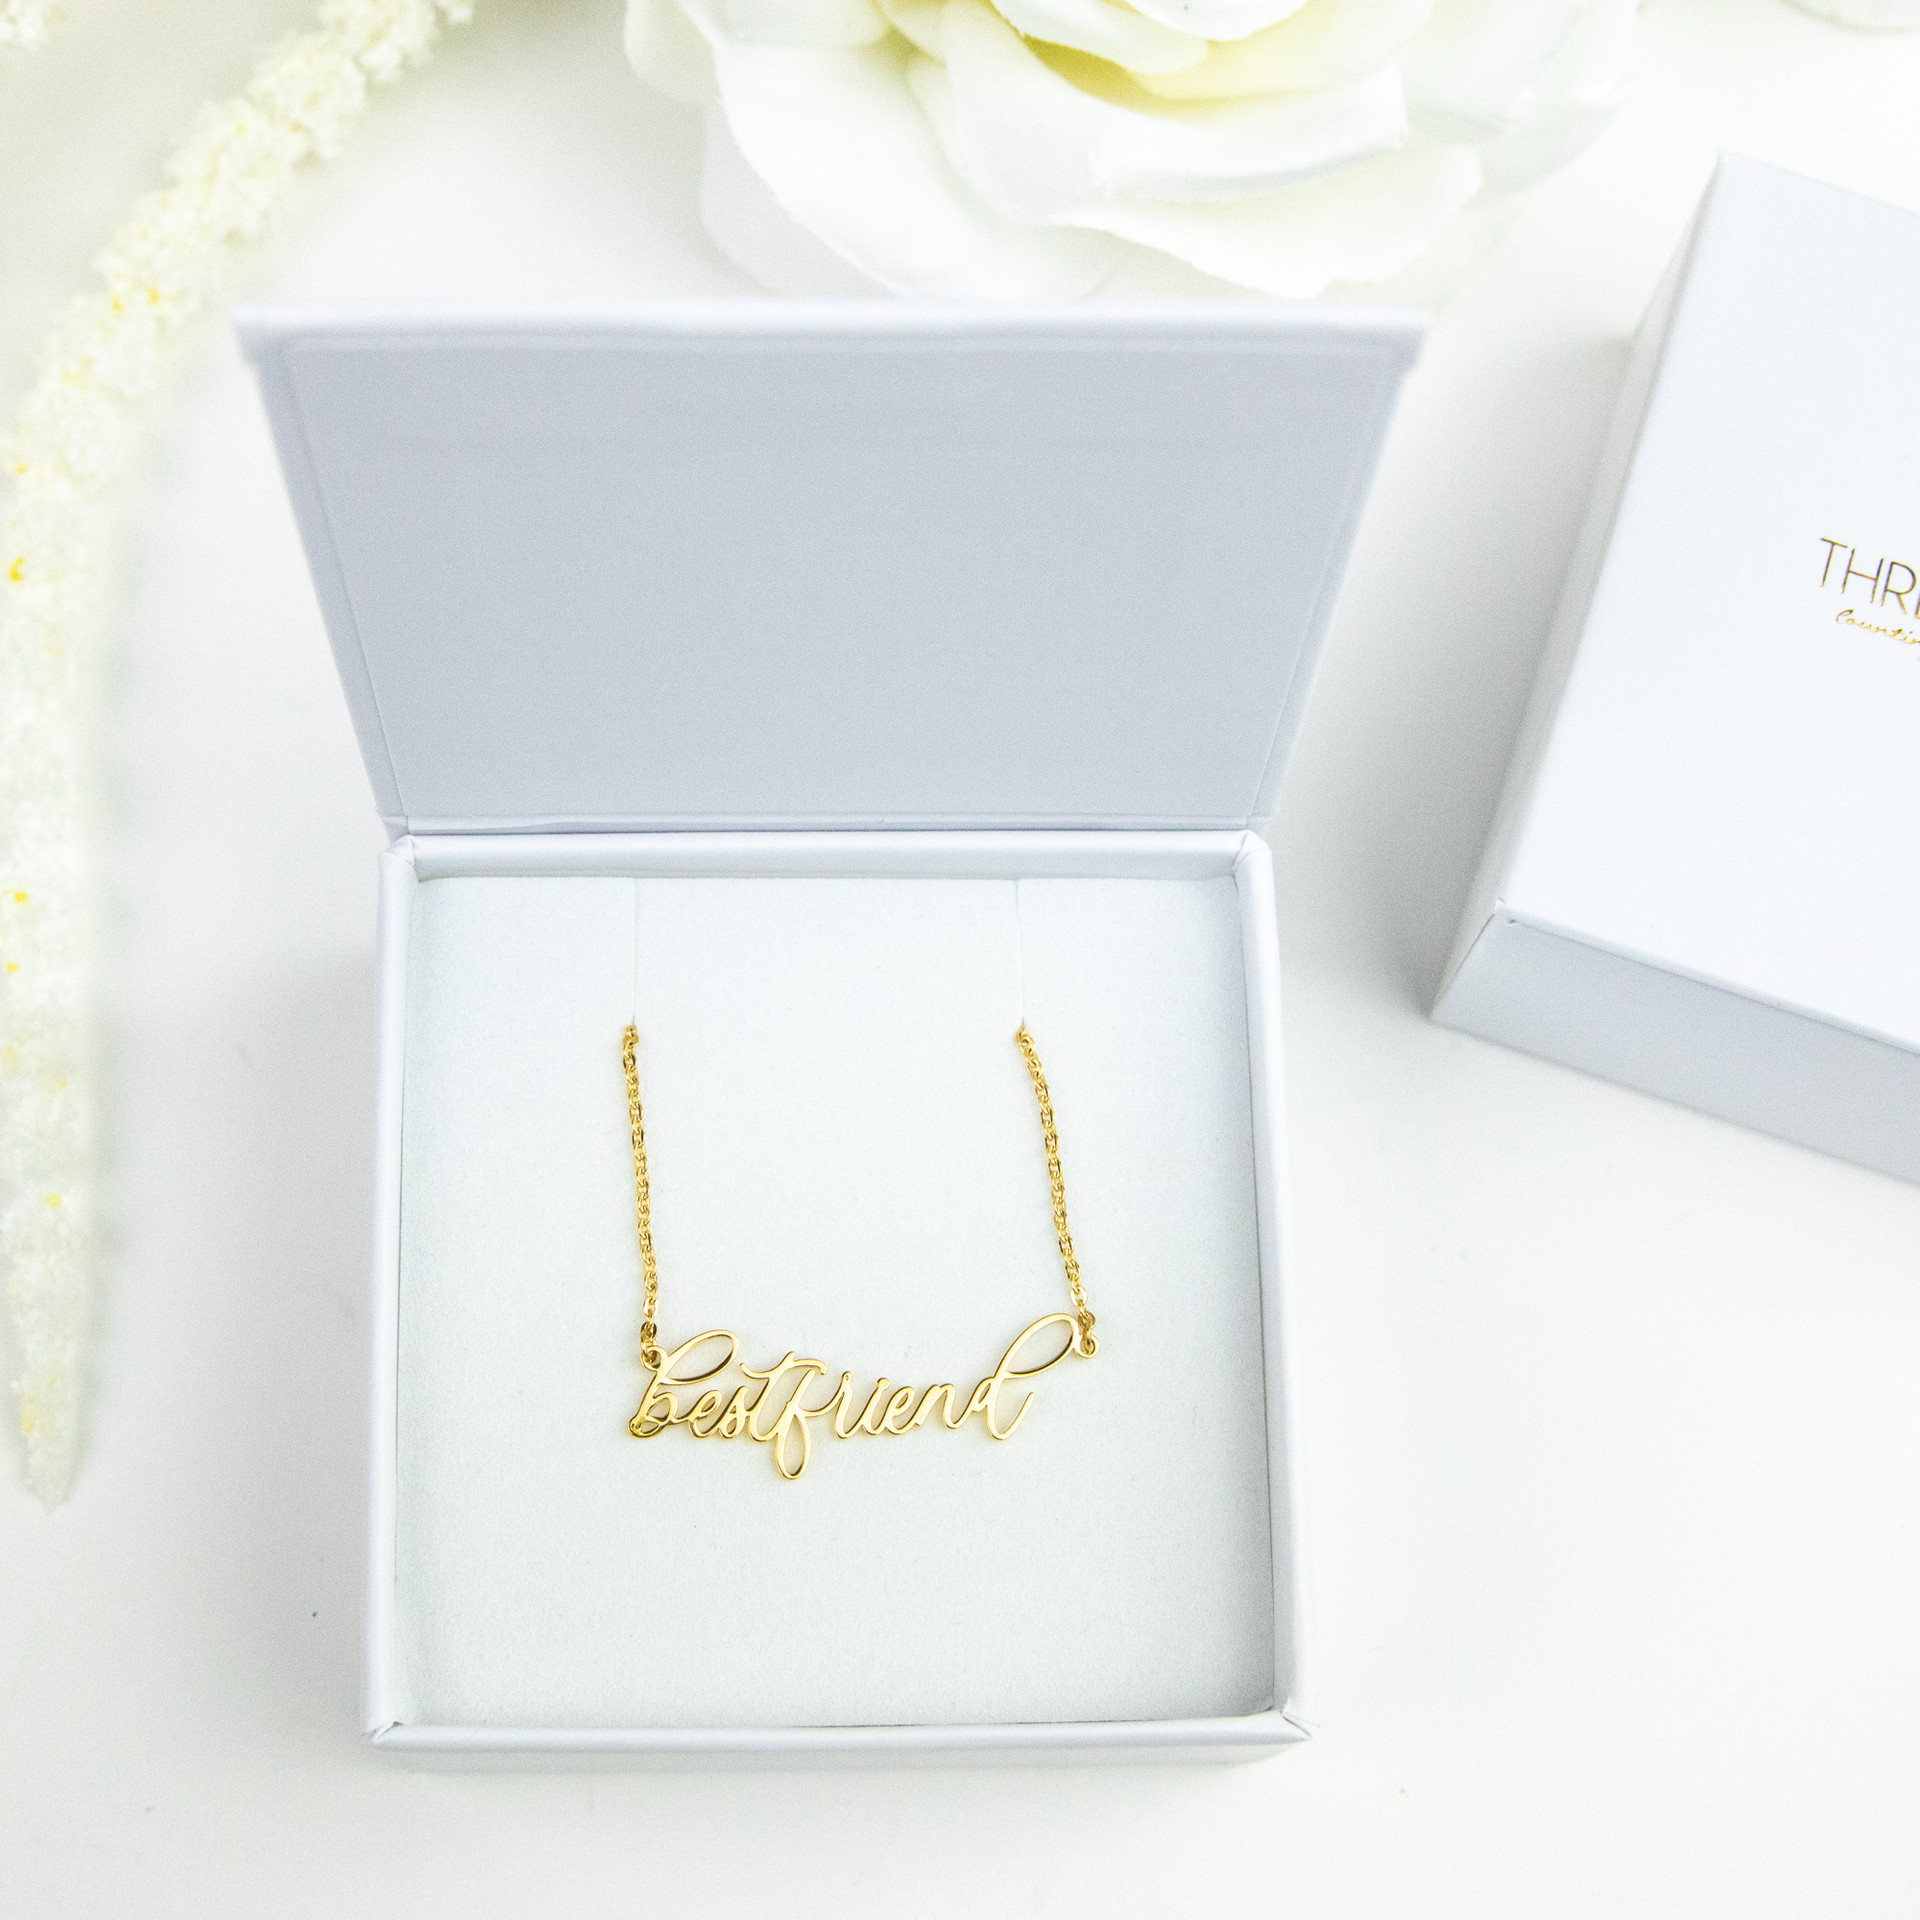 Bestfriend Necklace